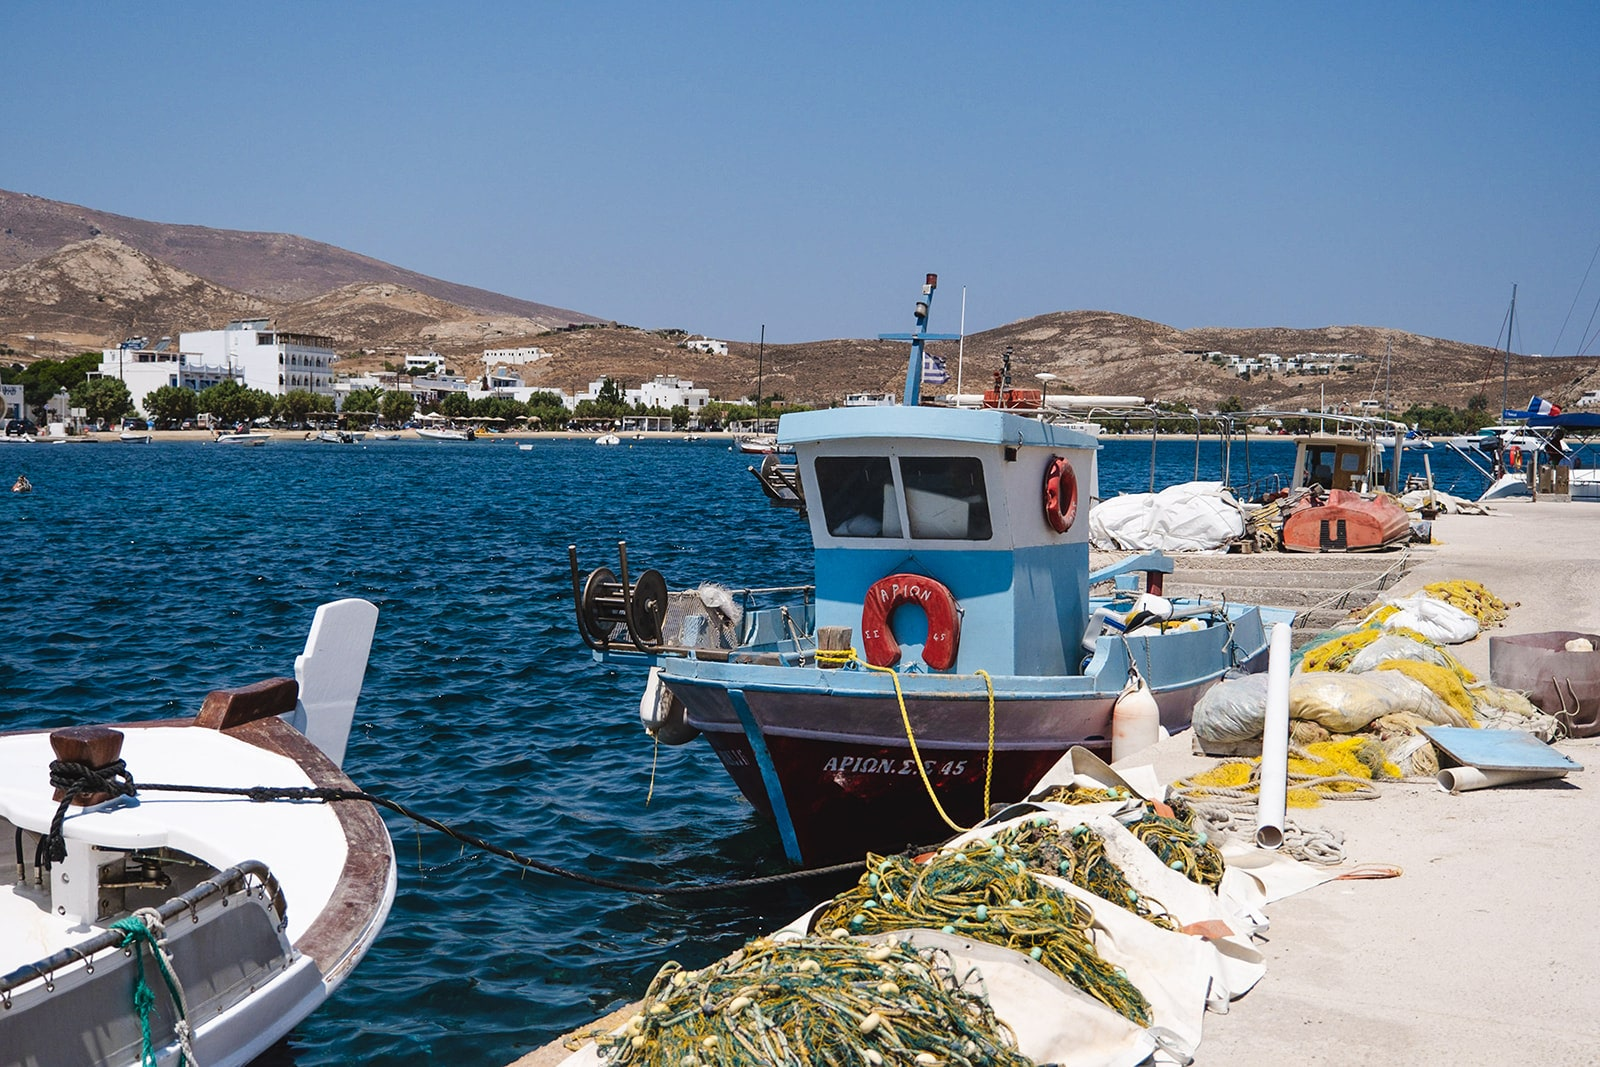 Traditional greek fisihing boat in the port of Serifos island